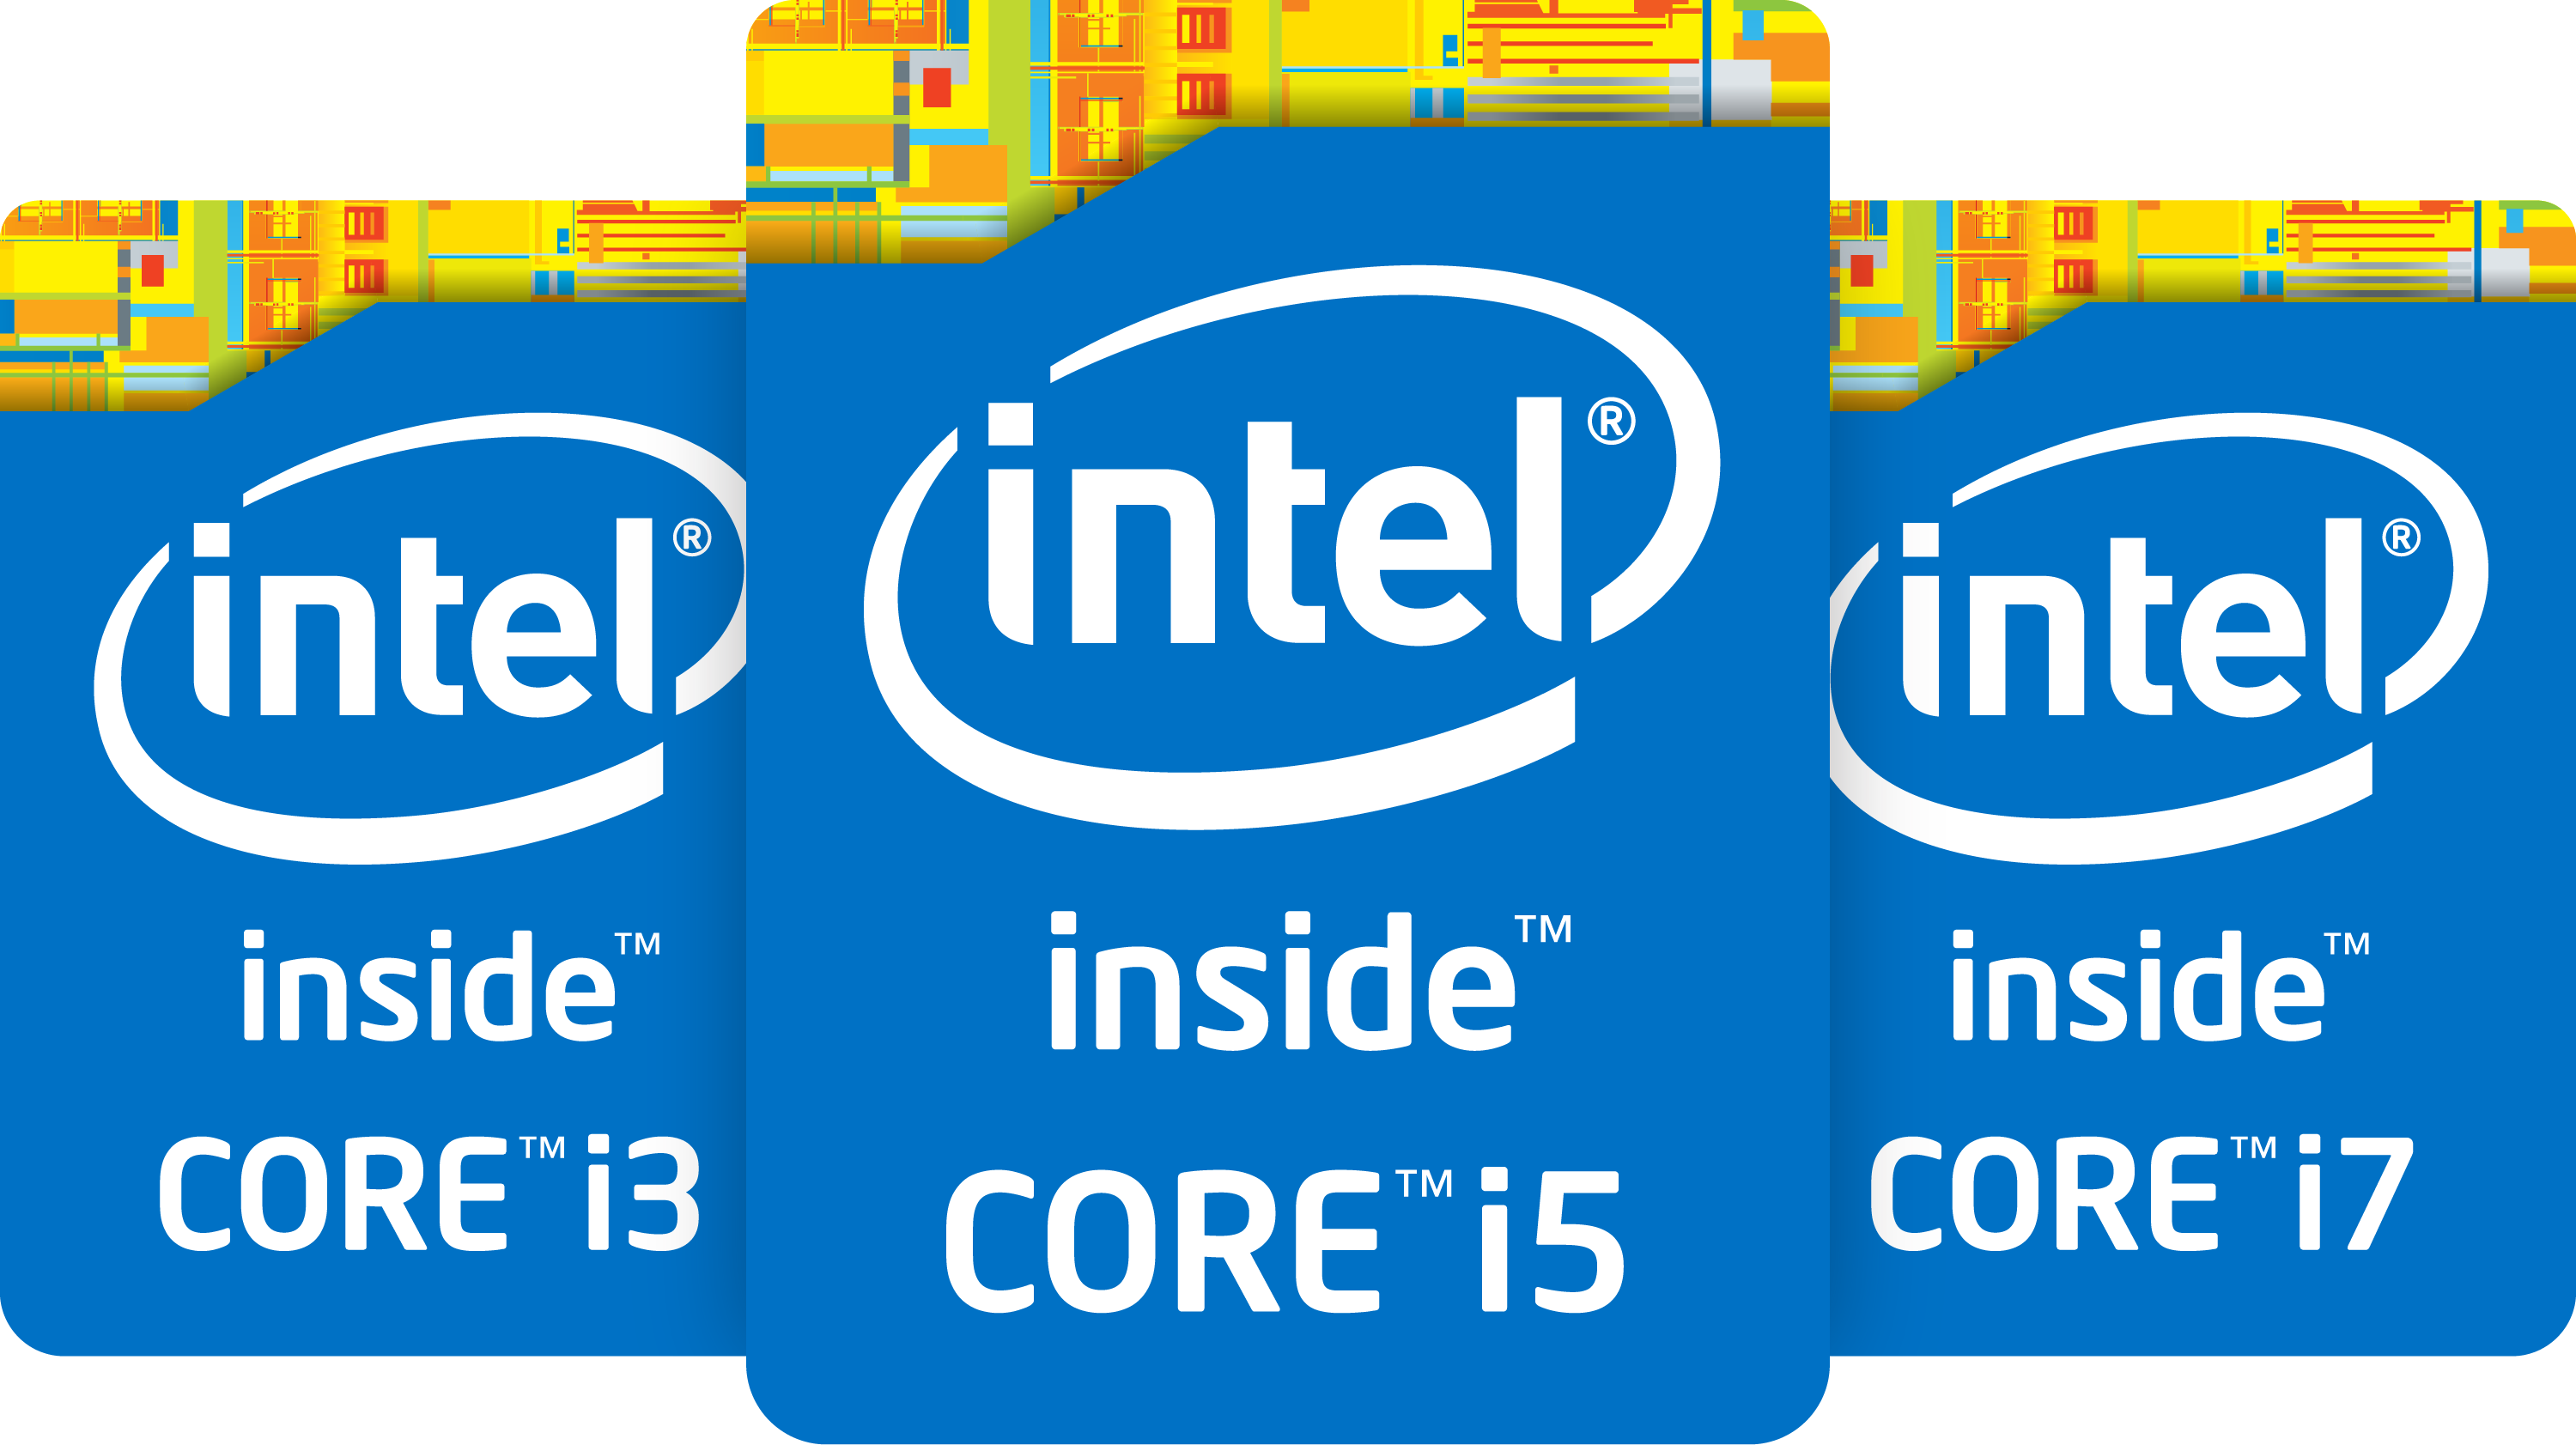 4th-gen-core-processor-badges-stacked